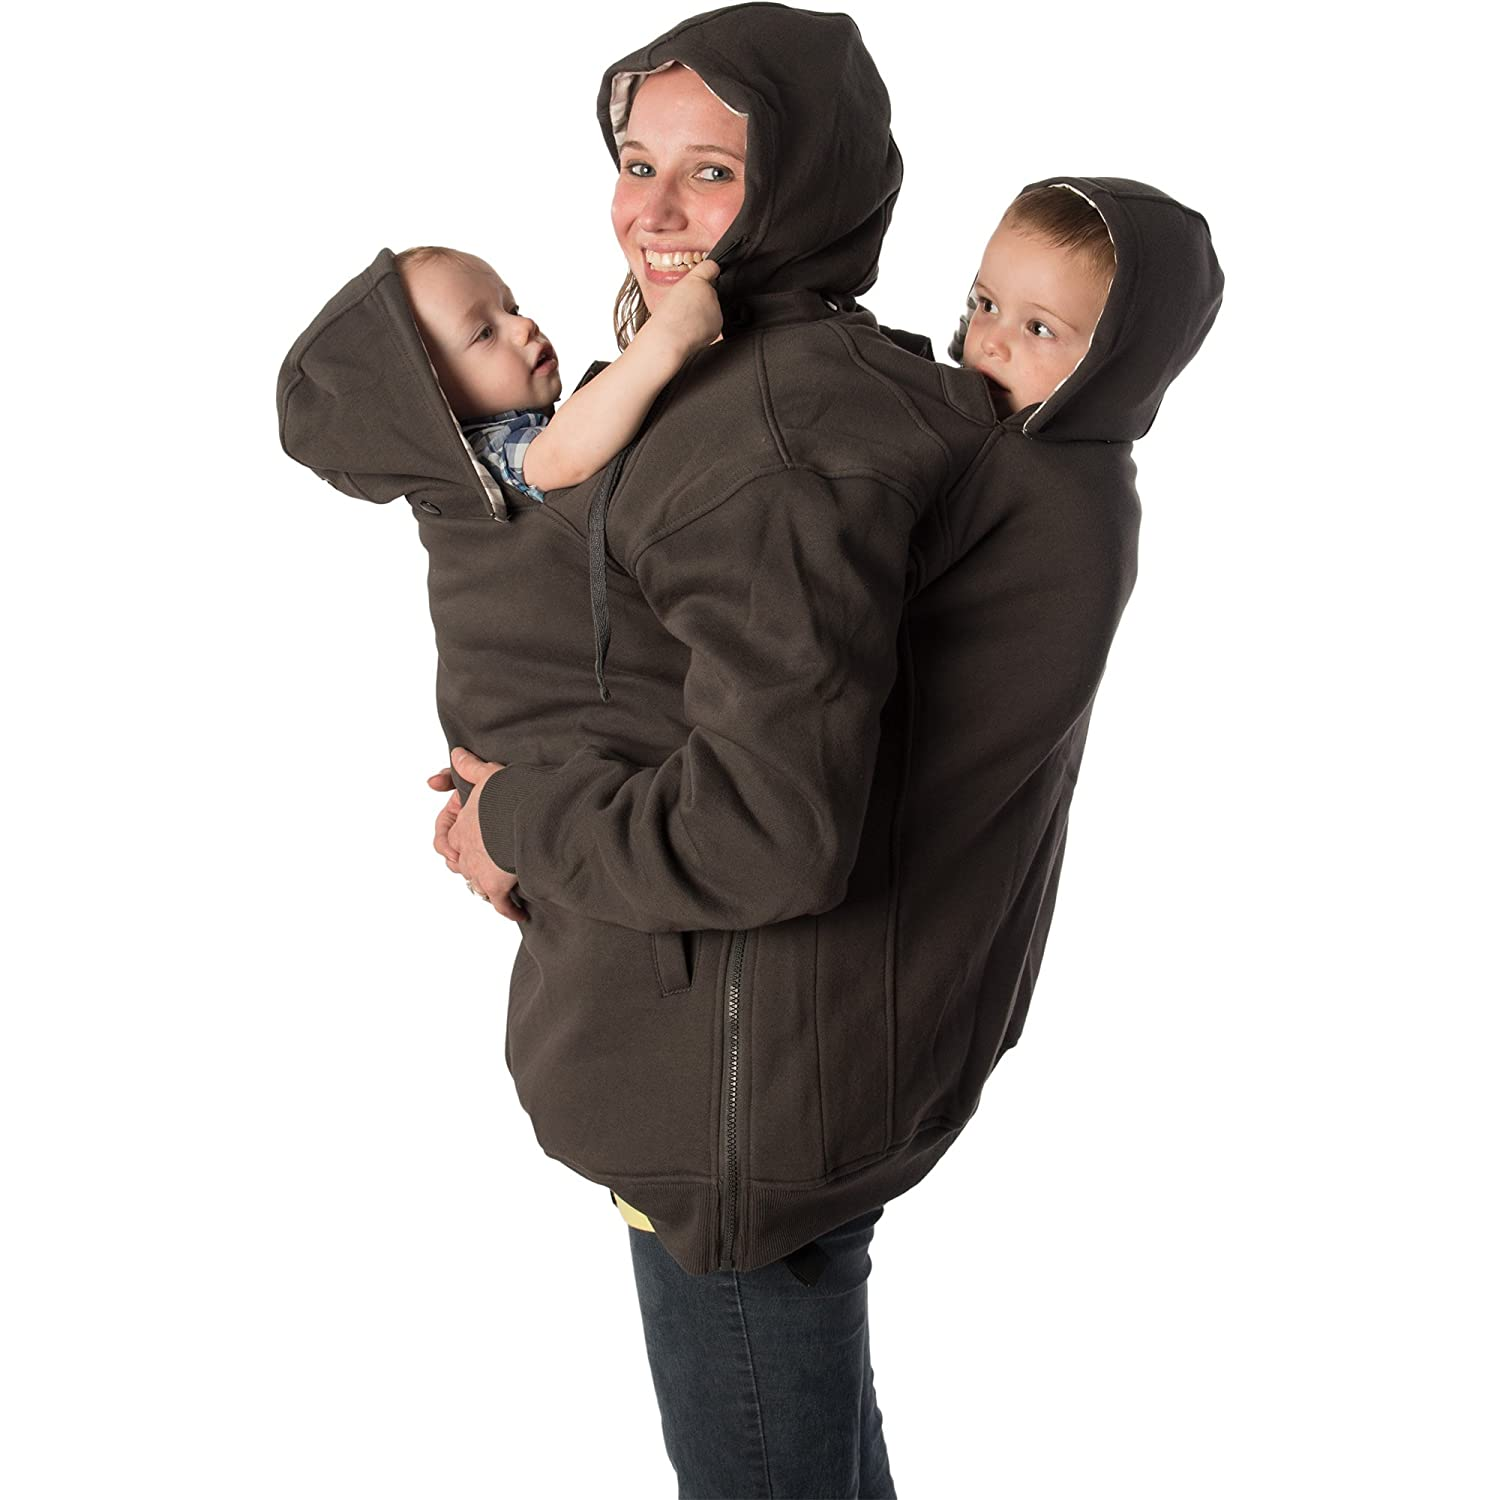 RooCoat Tandem Babywearing /& Maternity Coat Charcoal with Gray Stripes Small